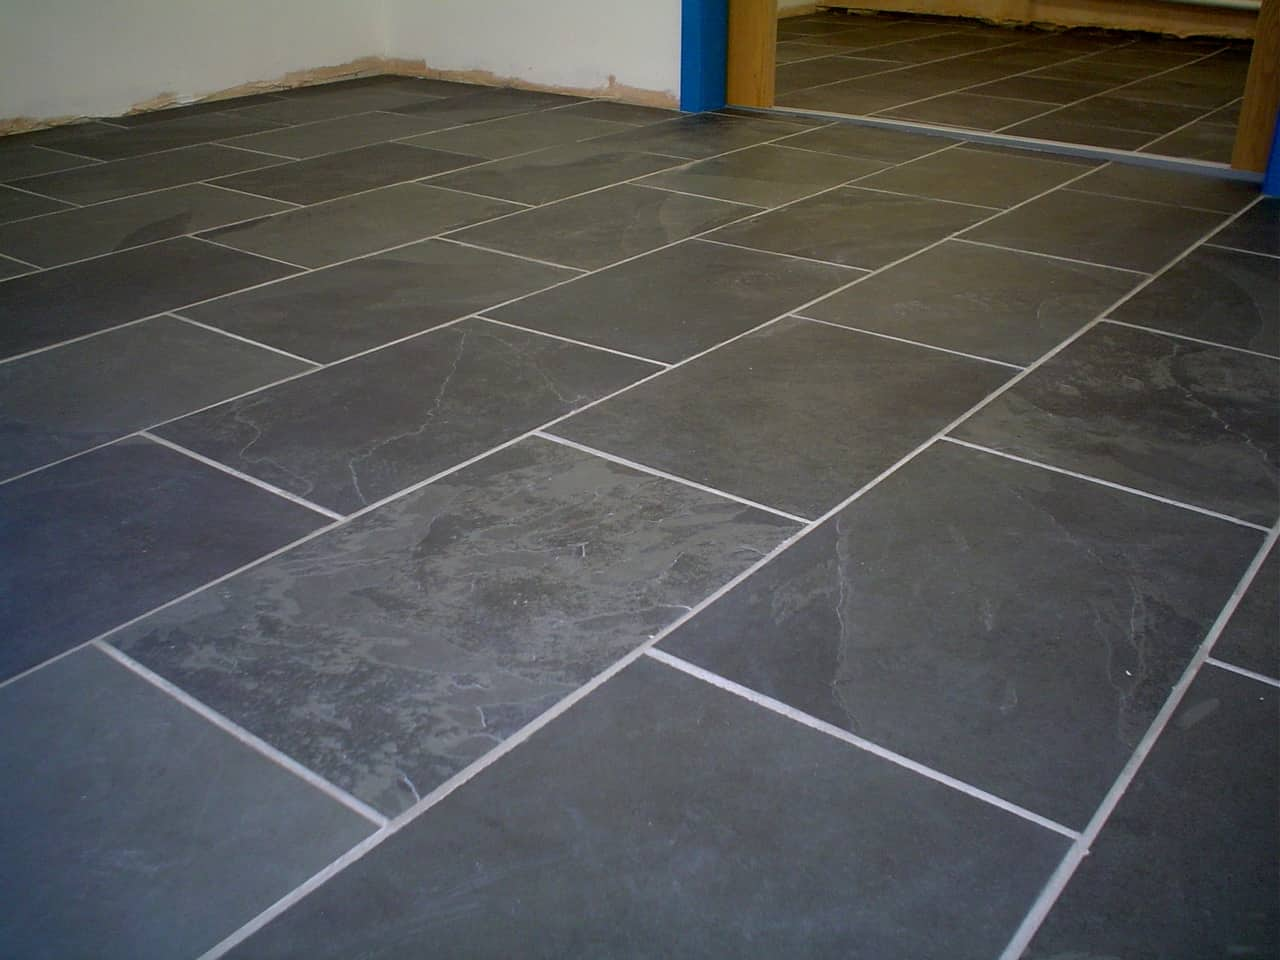 Slate Tiles Our Top List Contemporary Tile Design Ideas From Around The World